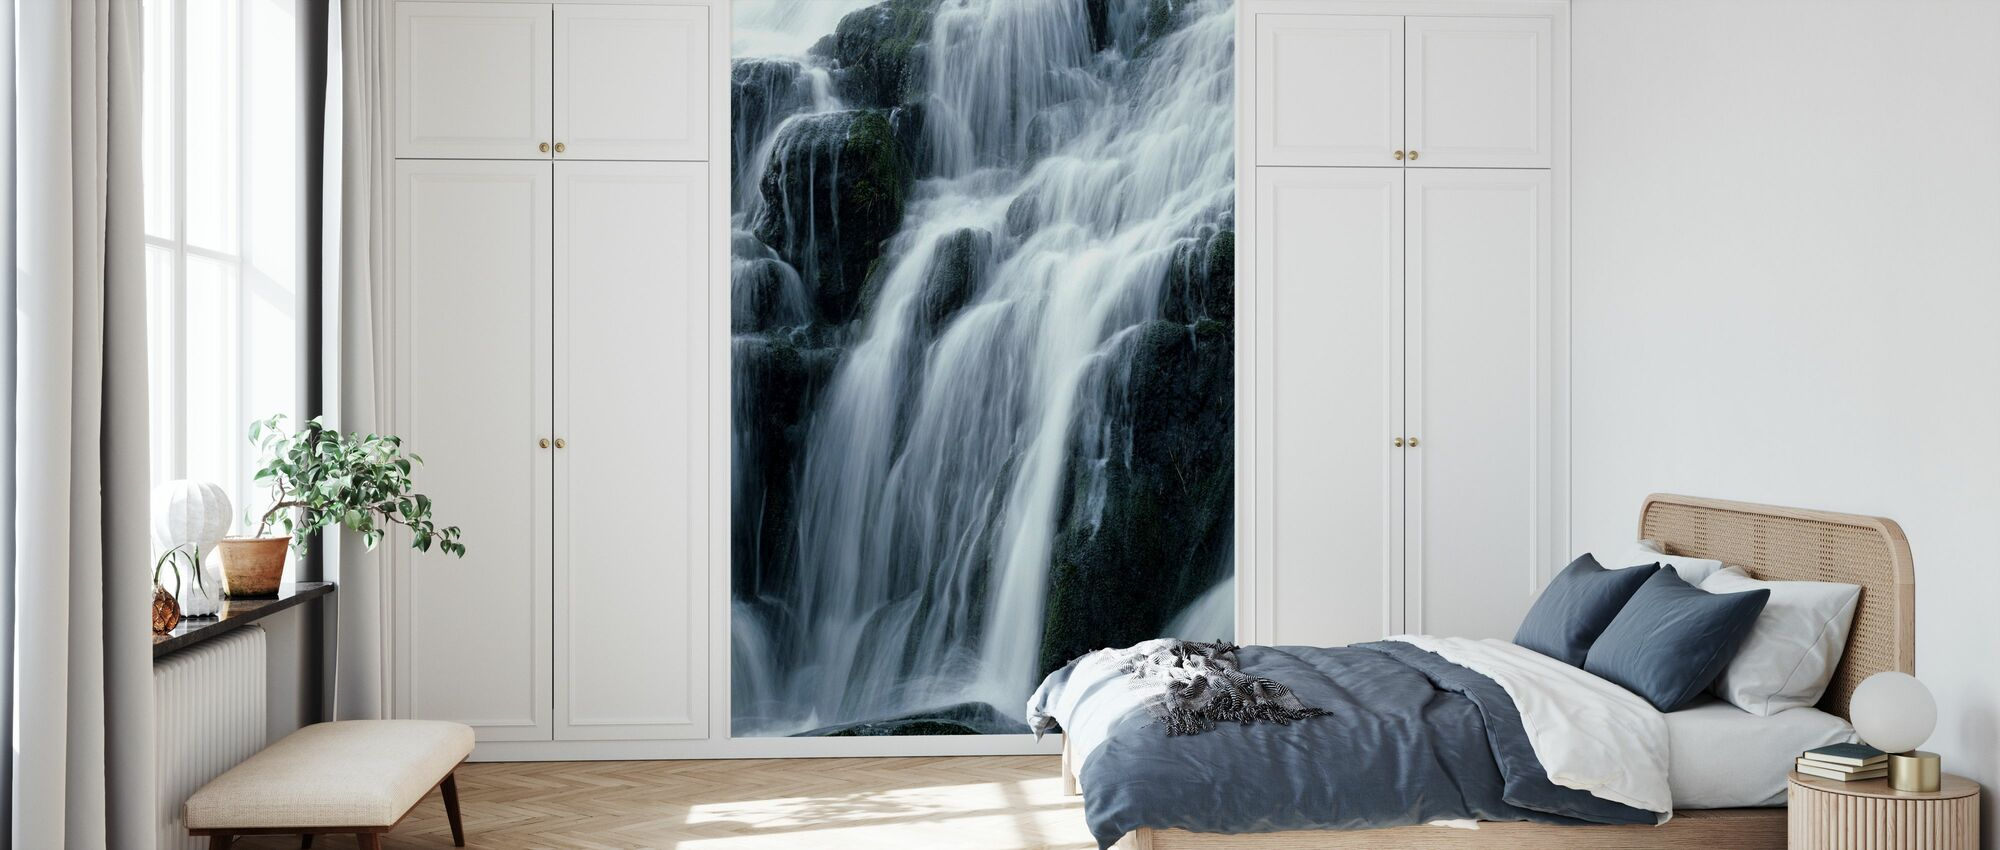 Waterfall - Wallpaper - Bedroom